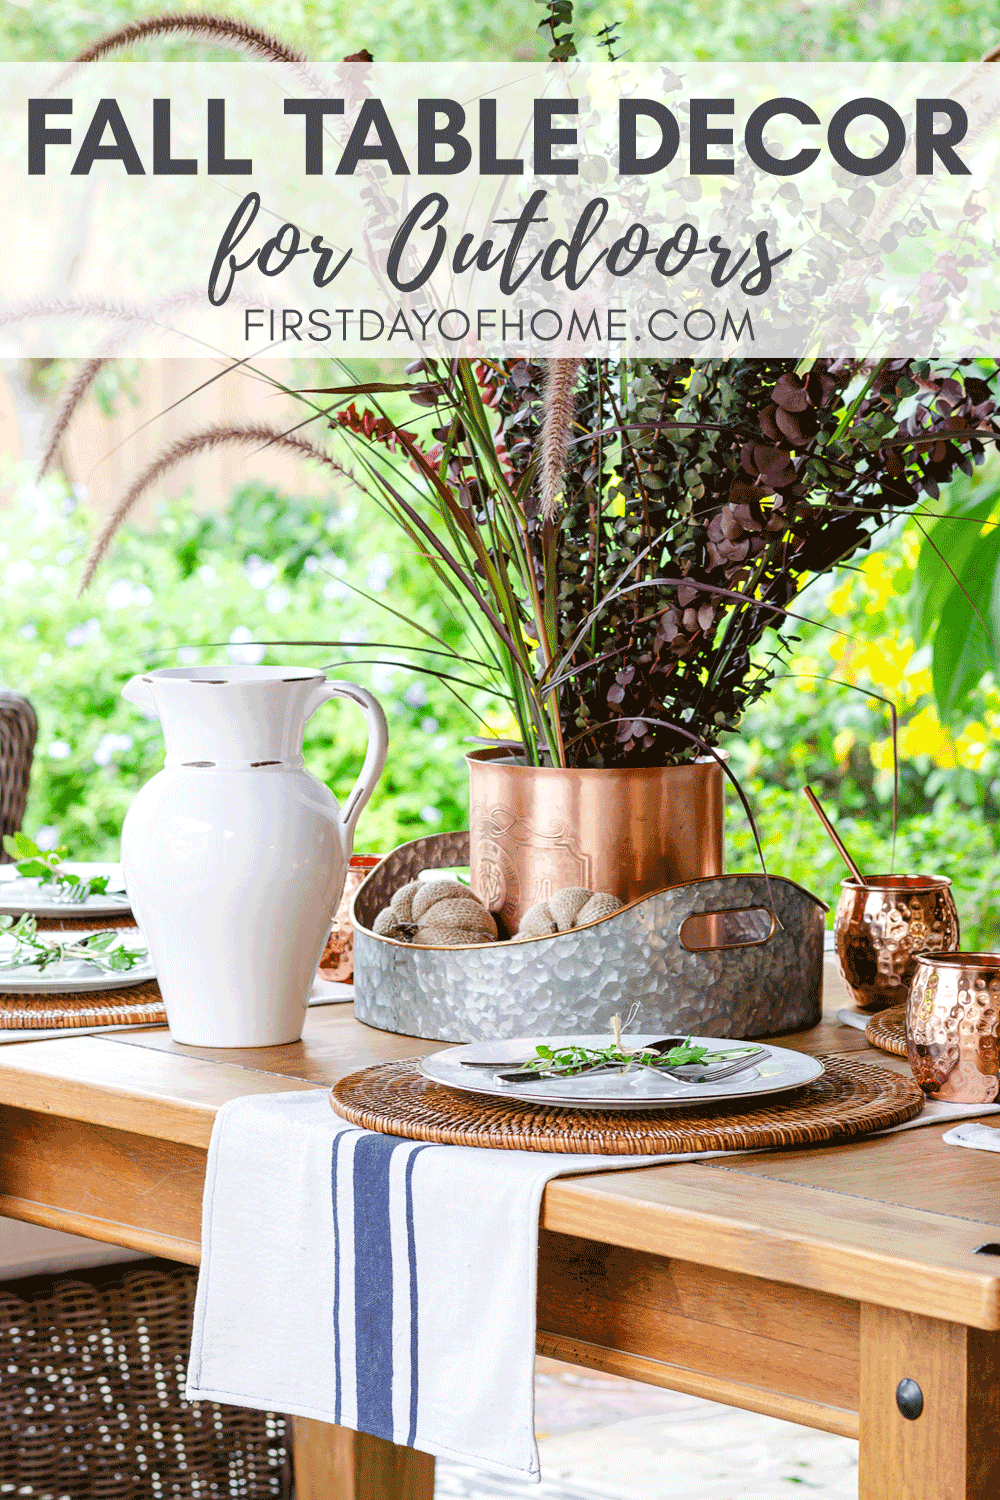 Fall outdoor dining table decor with copper mugs, copper ice bucket, woven placemats and DIY grain sack towels with tall fall centerpiece